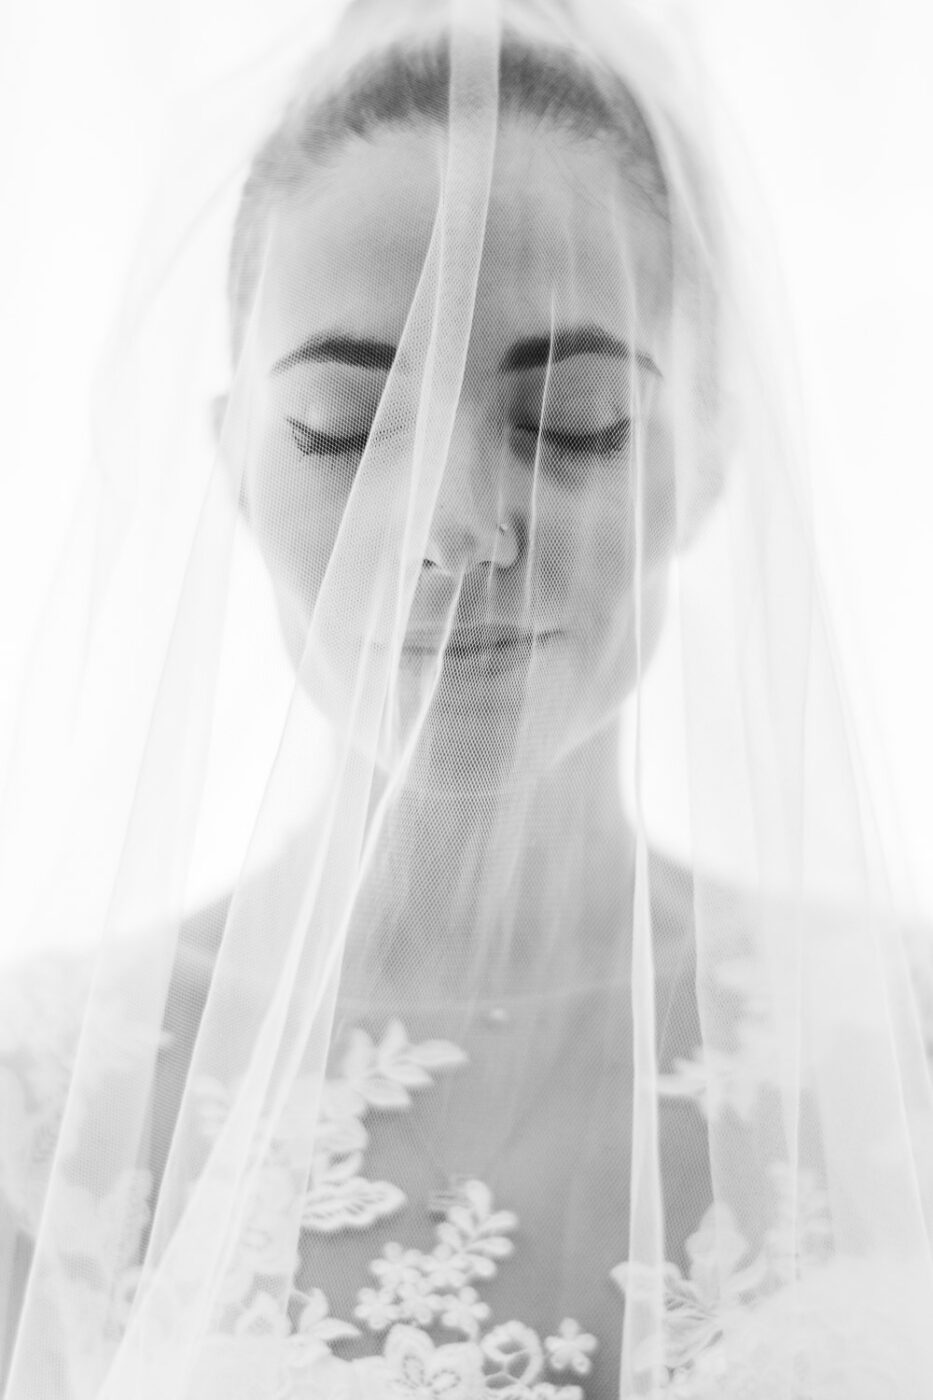 Black & White portrait of a bride under her veil with a thoughtful expression and eyes closed at Brix 2.0 in Brixen Italy by Luxury Wedding Photographer Francesco Bognin